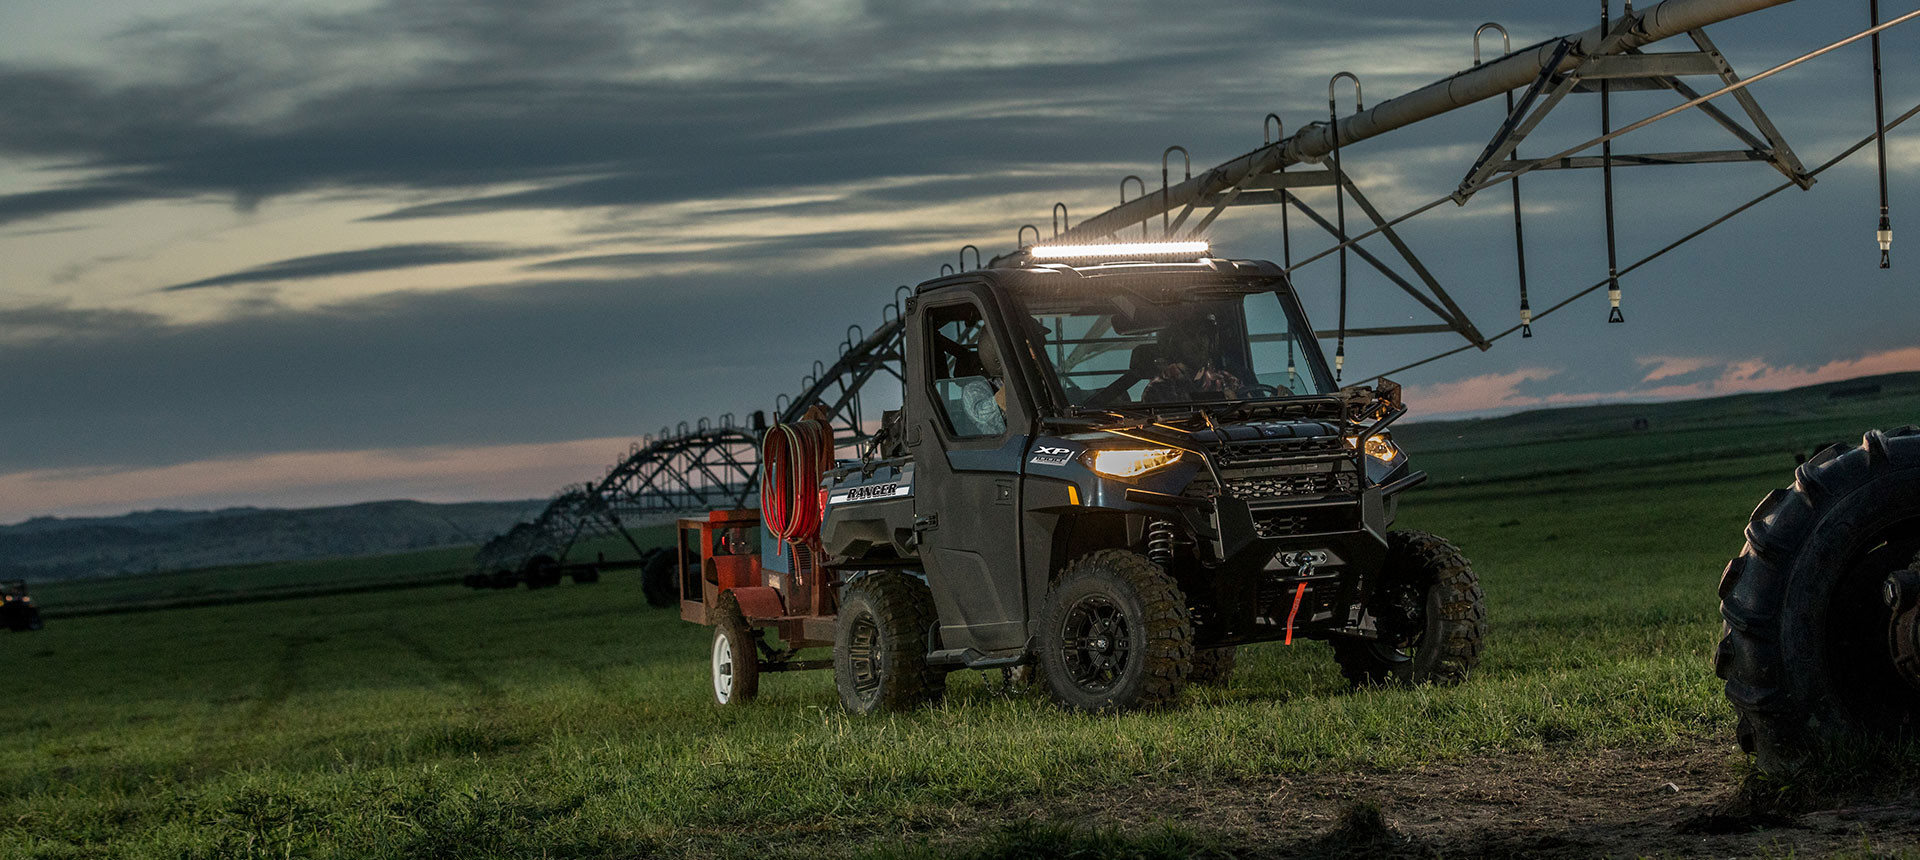 2020 RANGER® XP 1000 High Lifter Edition Instagram image 6